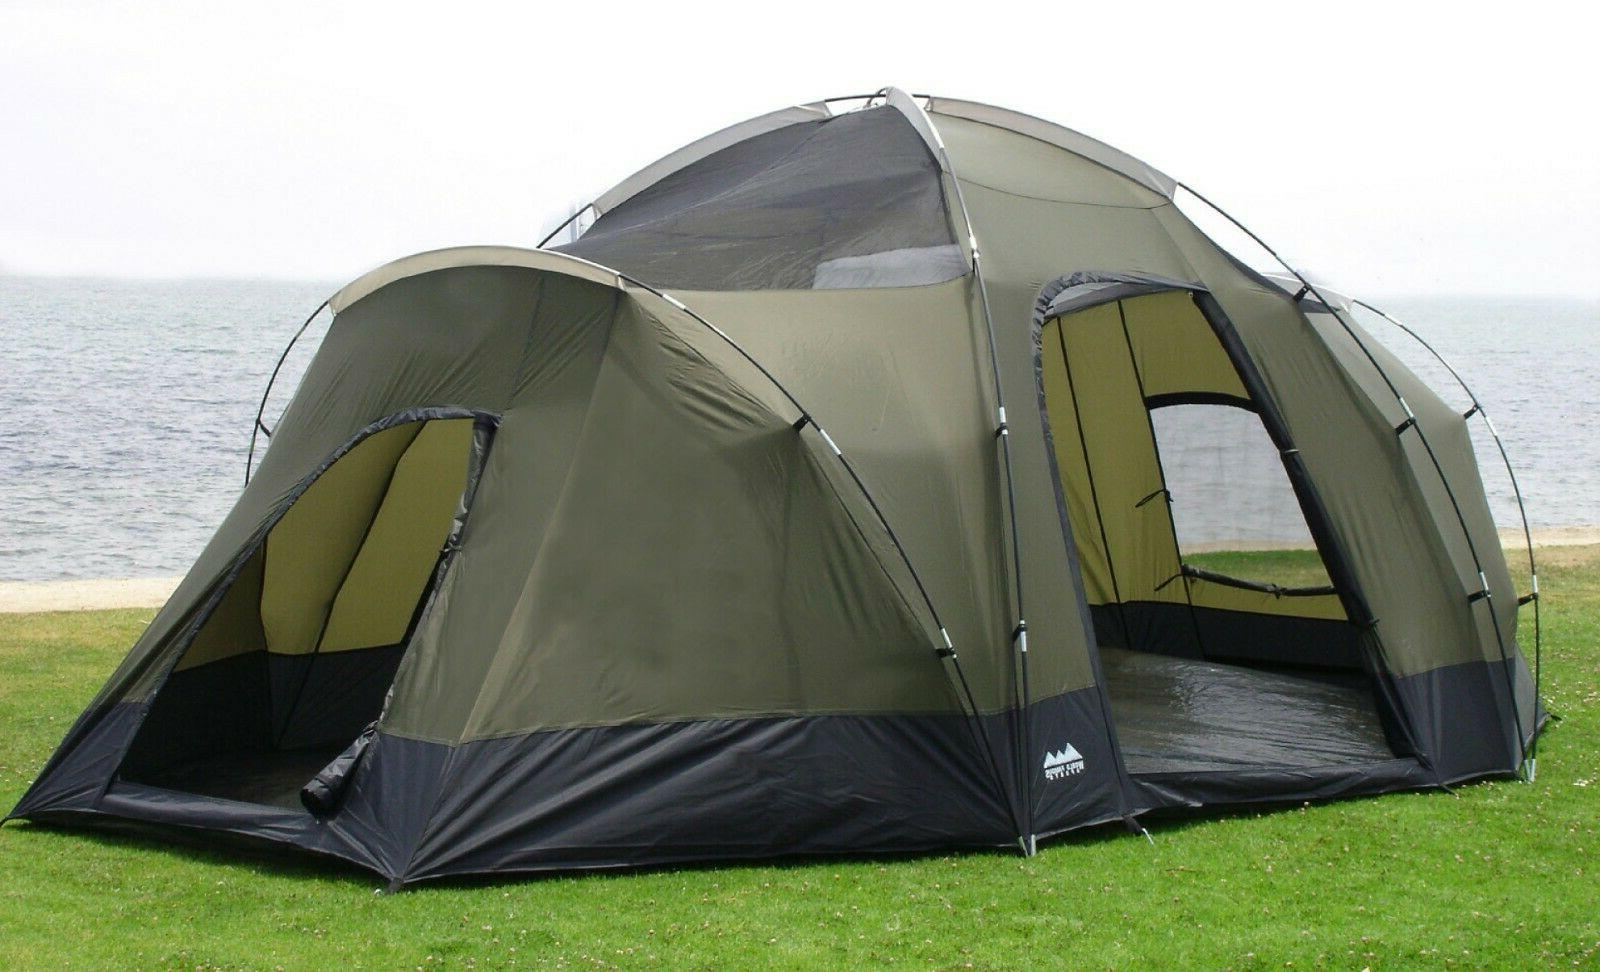 8 PERSON OVERSIZED TENT -